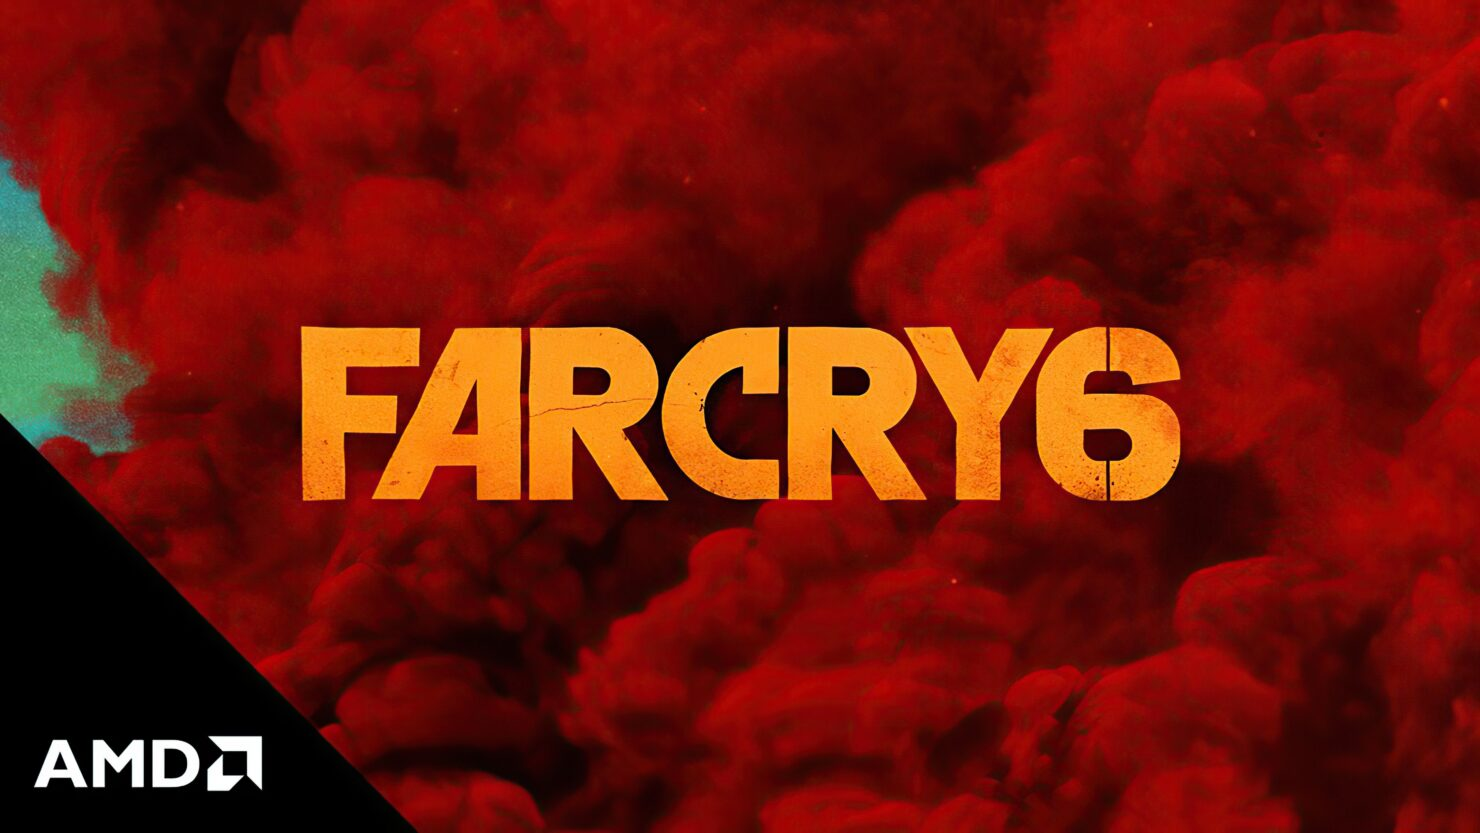 Far Cry 6 PC Requires Graphics Cards With Over 11 GB VRAM To Load High-Resolution Textures Properly